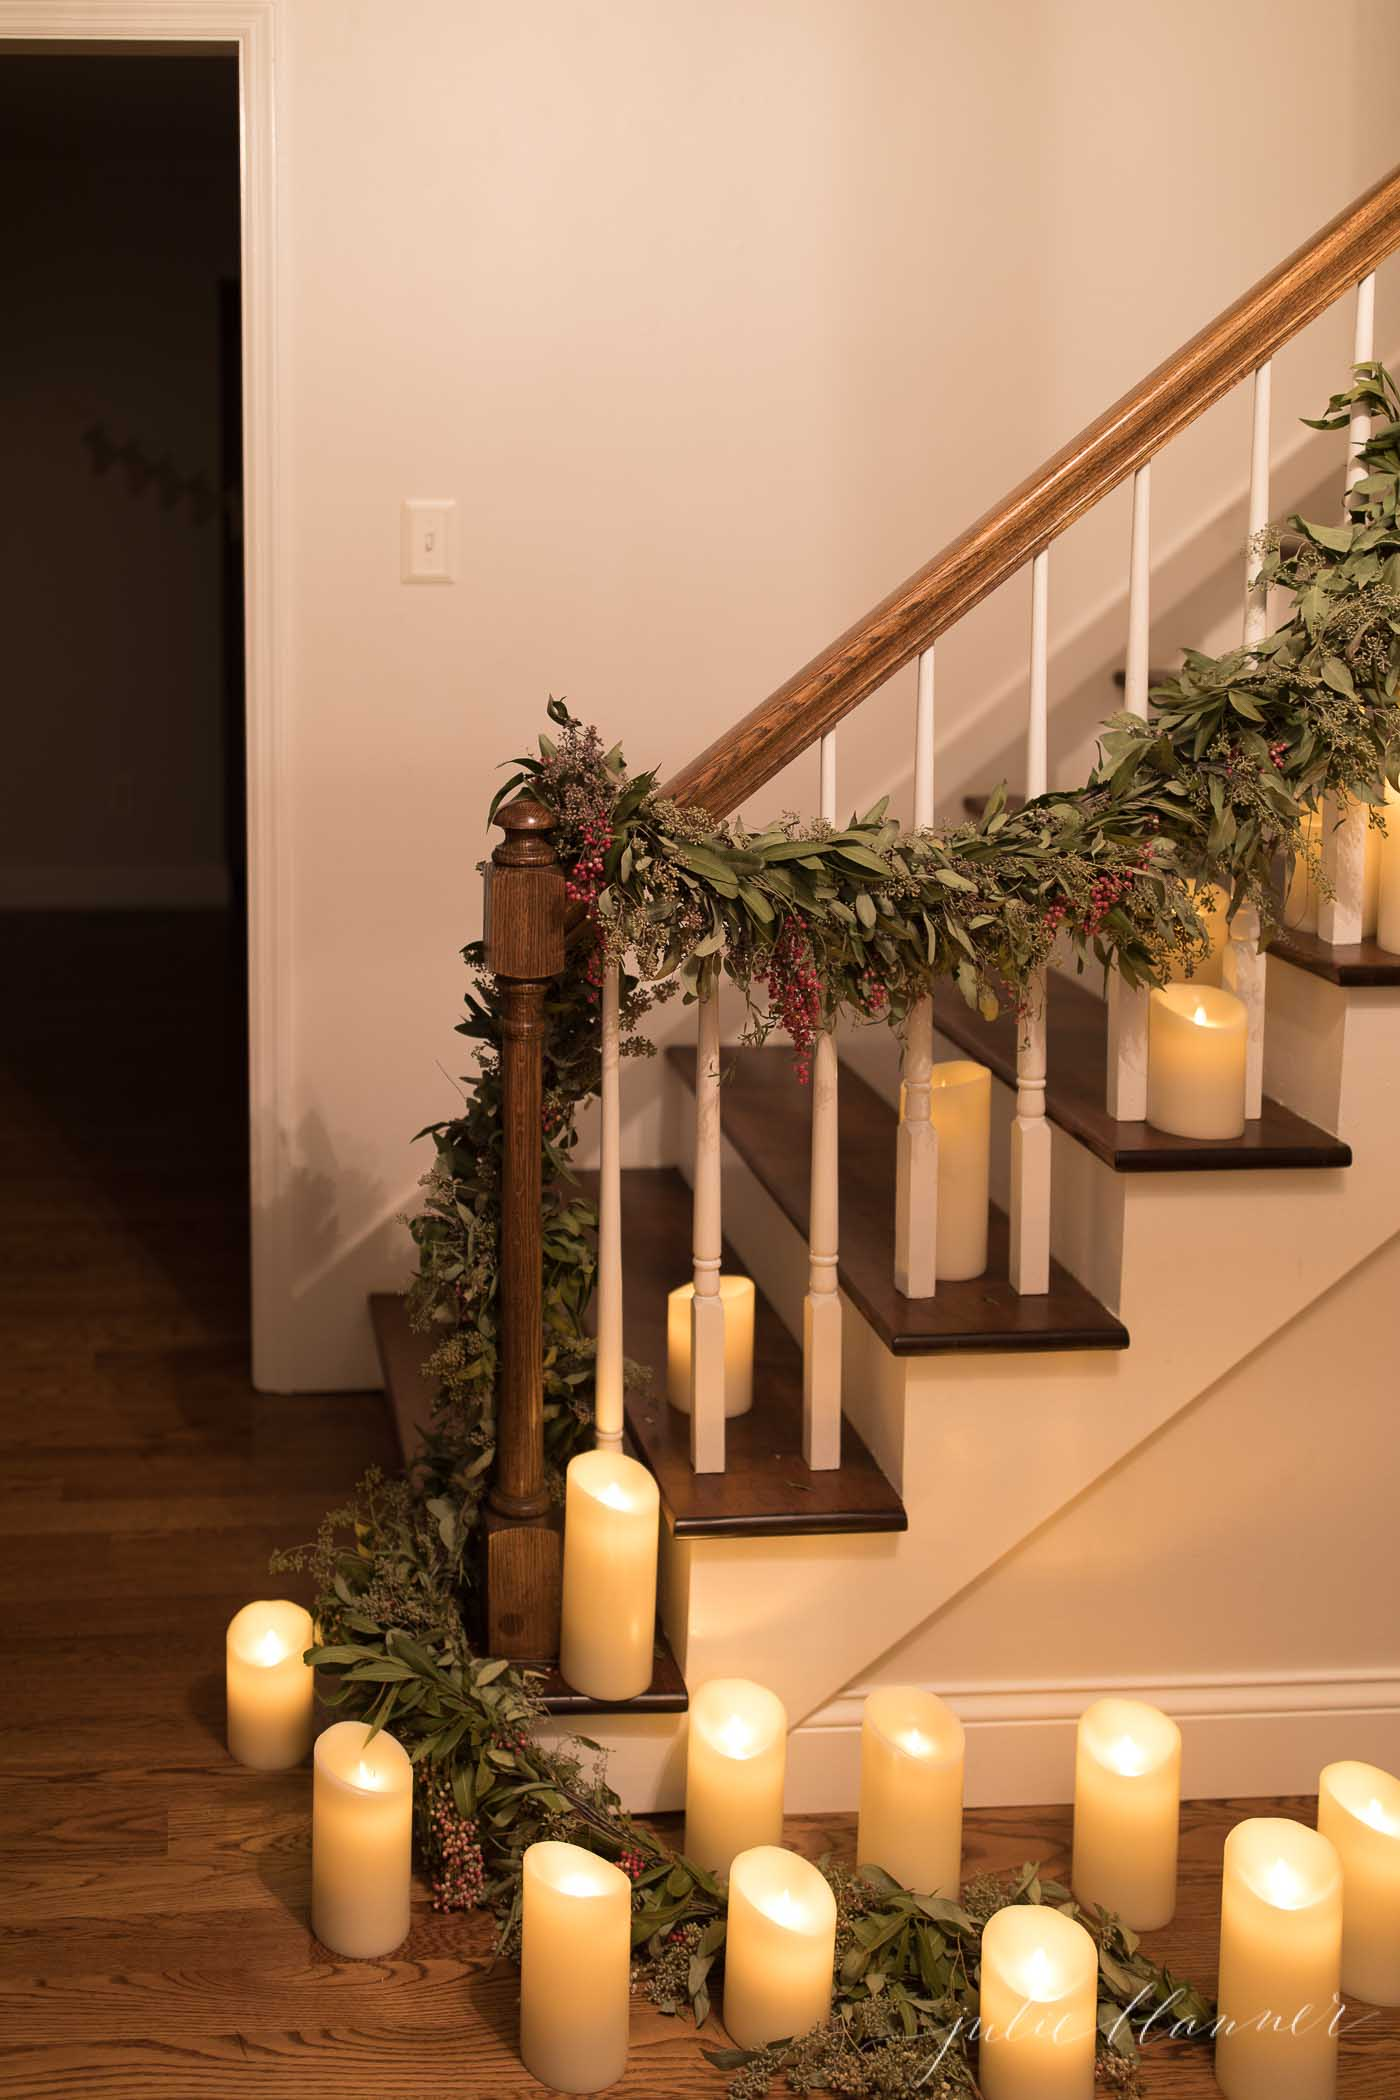 Decorating your house for Christmas? These 4 beautiful and unique Holiday home tours are sure to get you inspired this holiday season! | glitterinc.com | @glitterinc // All is Calm, All is Bright | Christmas Home Tour at Night